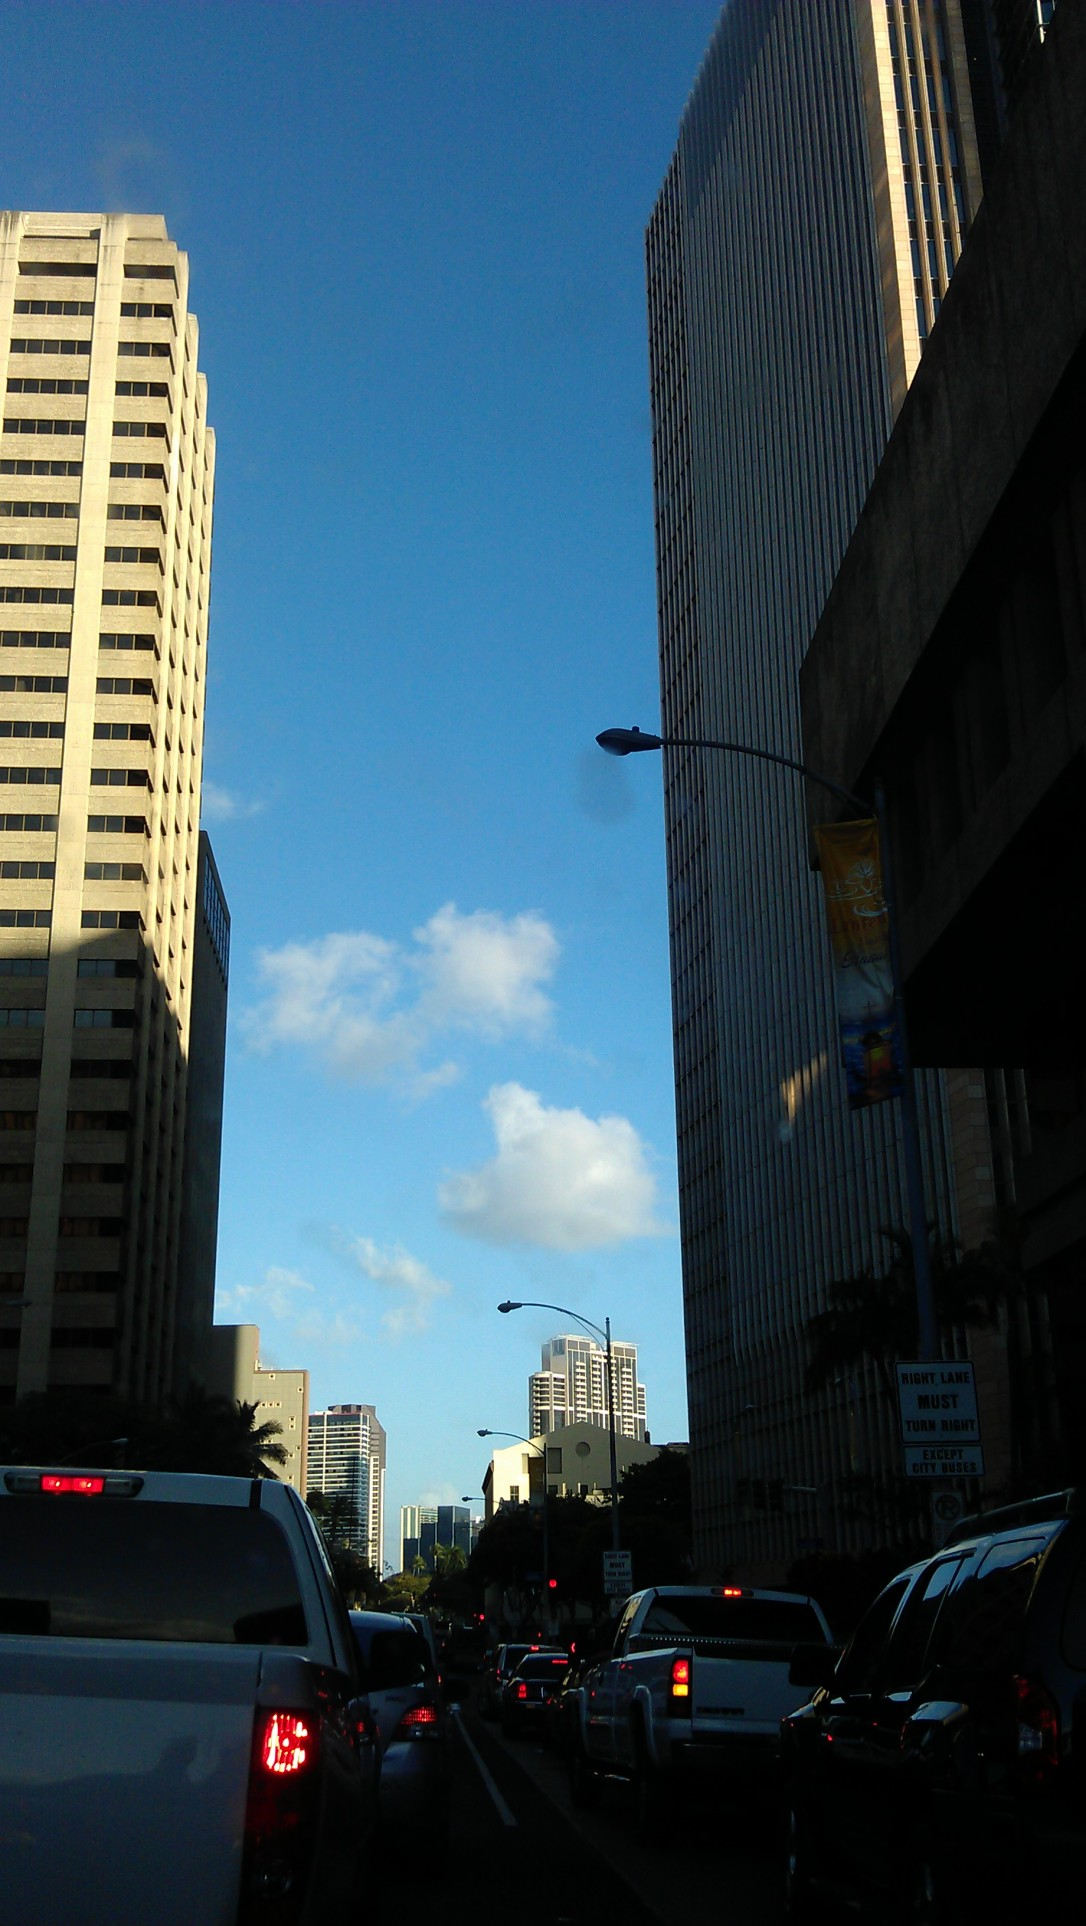 5/18/2012 driving downtown